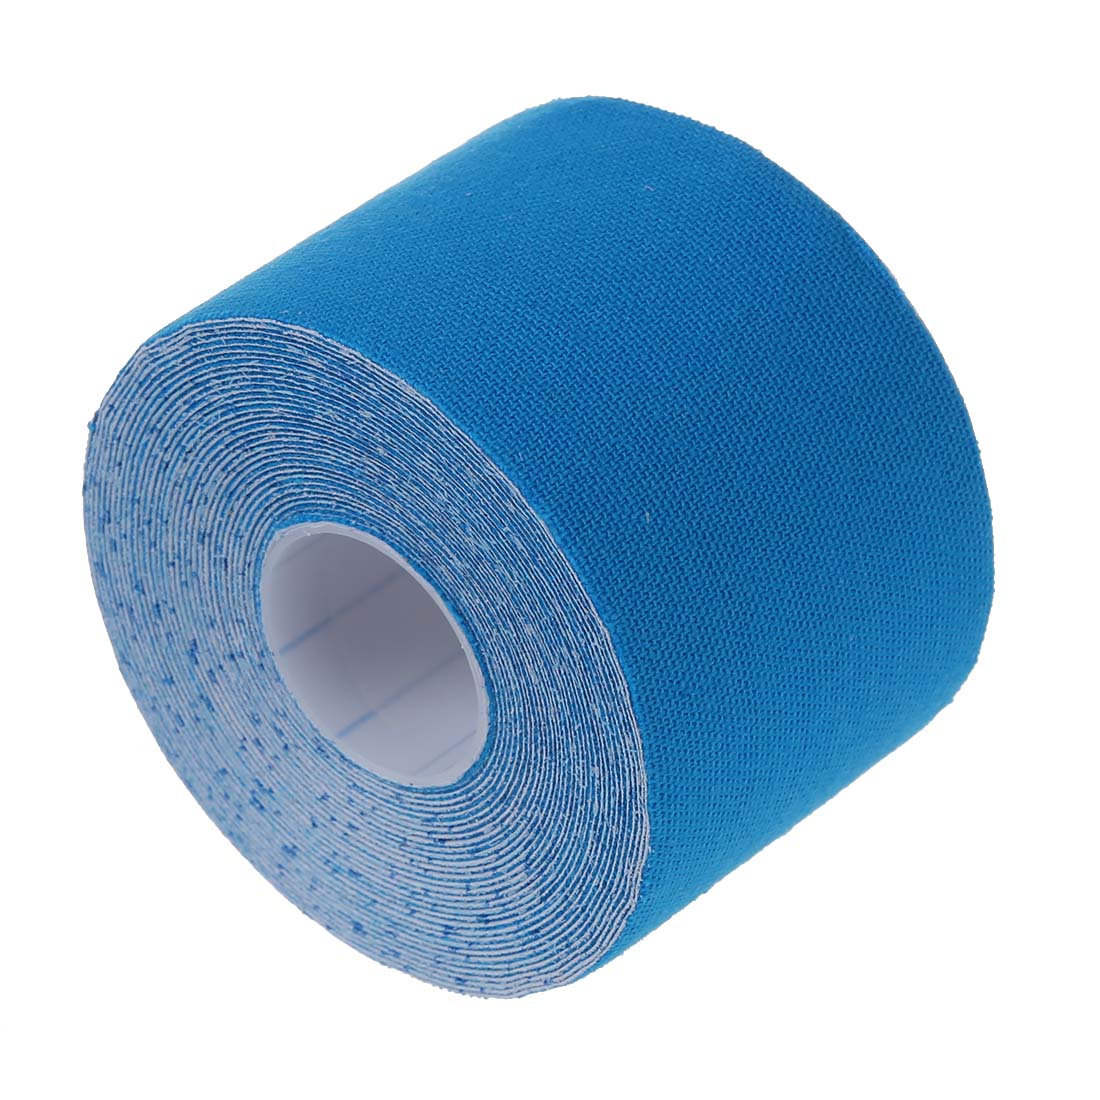 1 Roll Sports Kinesiology Muscles Care Fitness Athletic Health Tape 5M * 5CM - Blue/Black